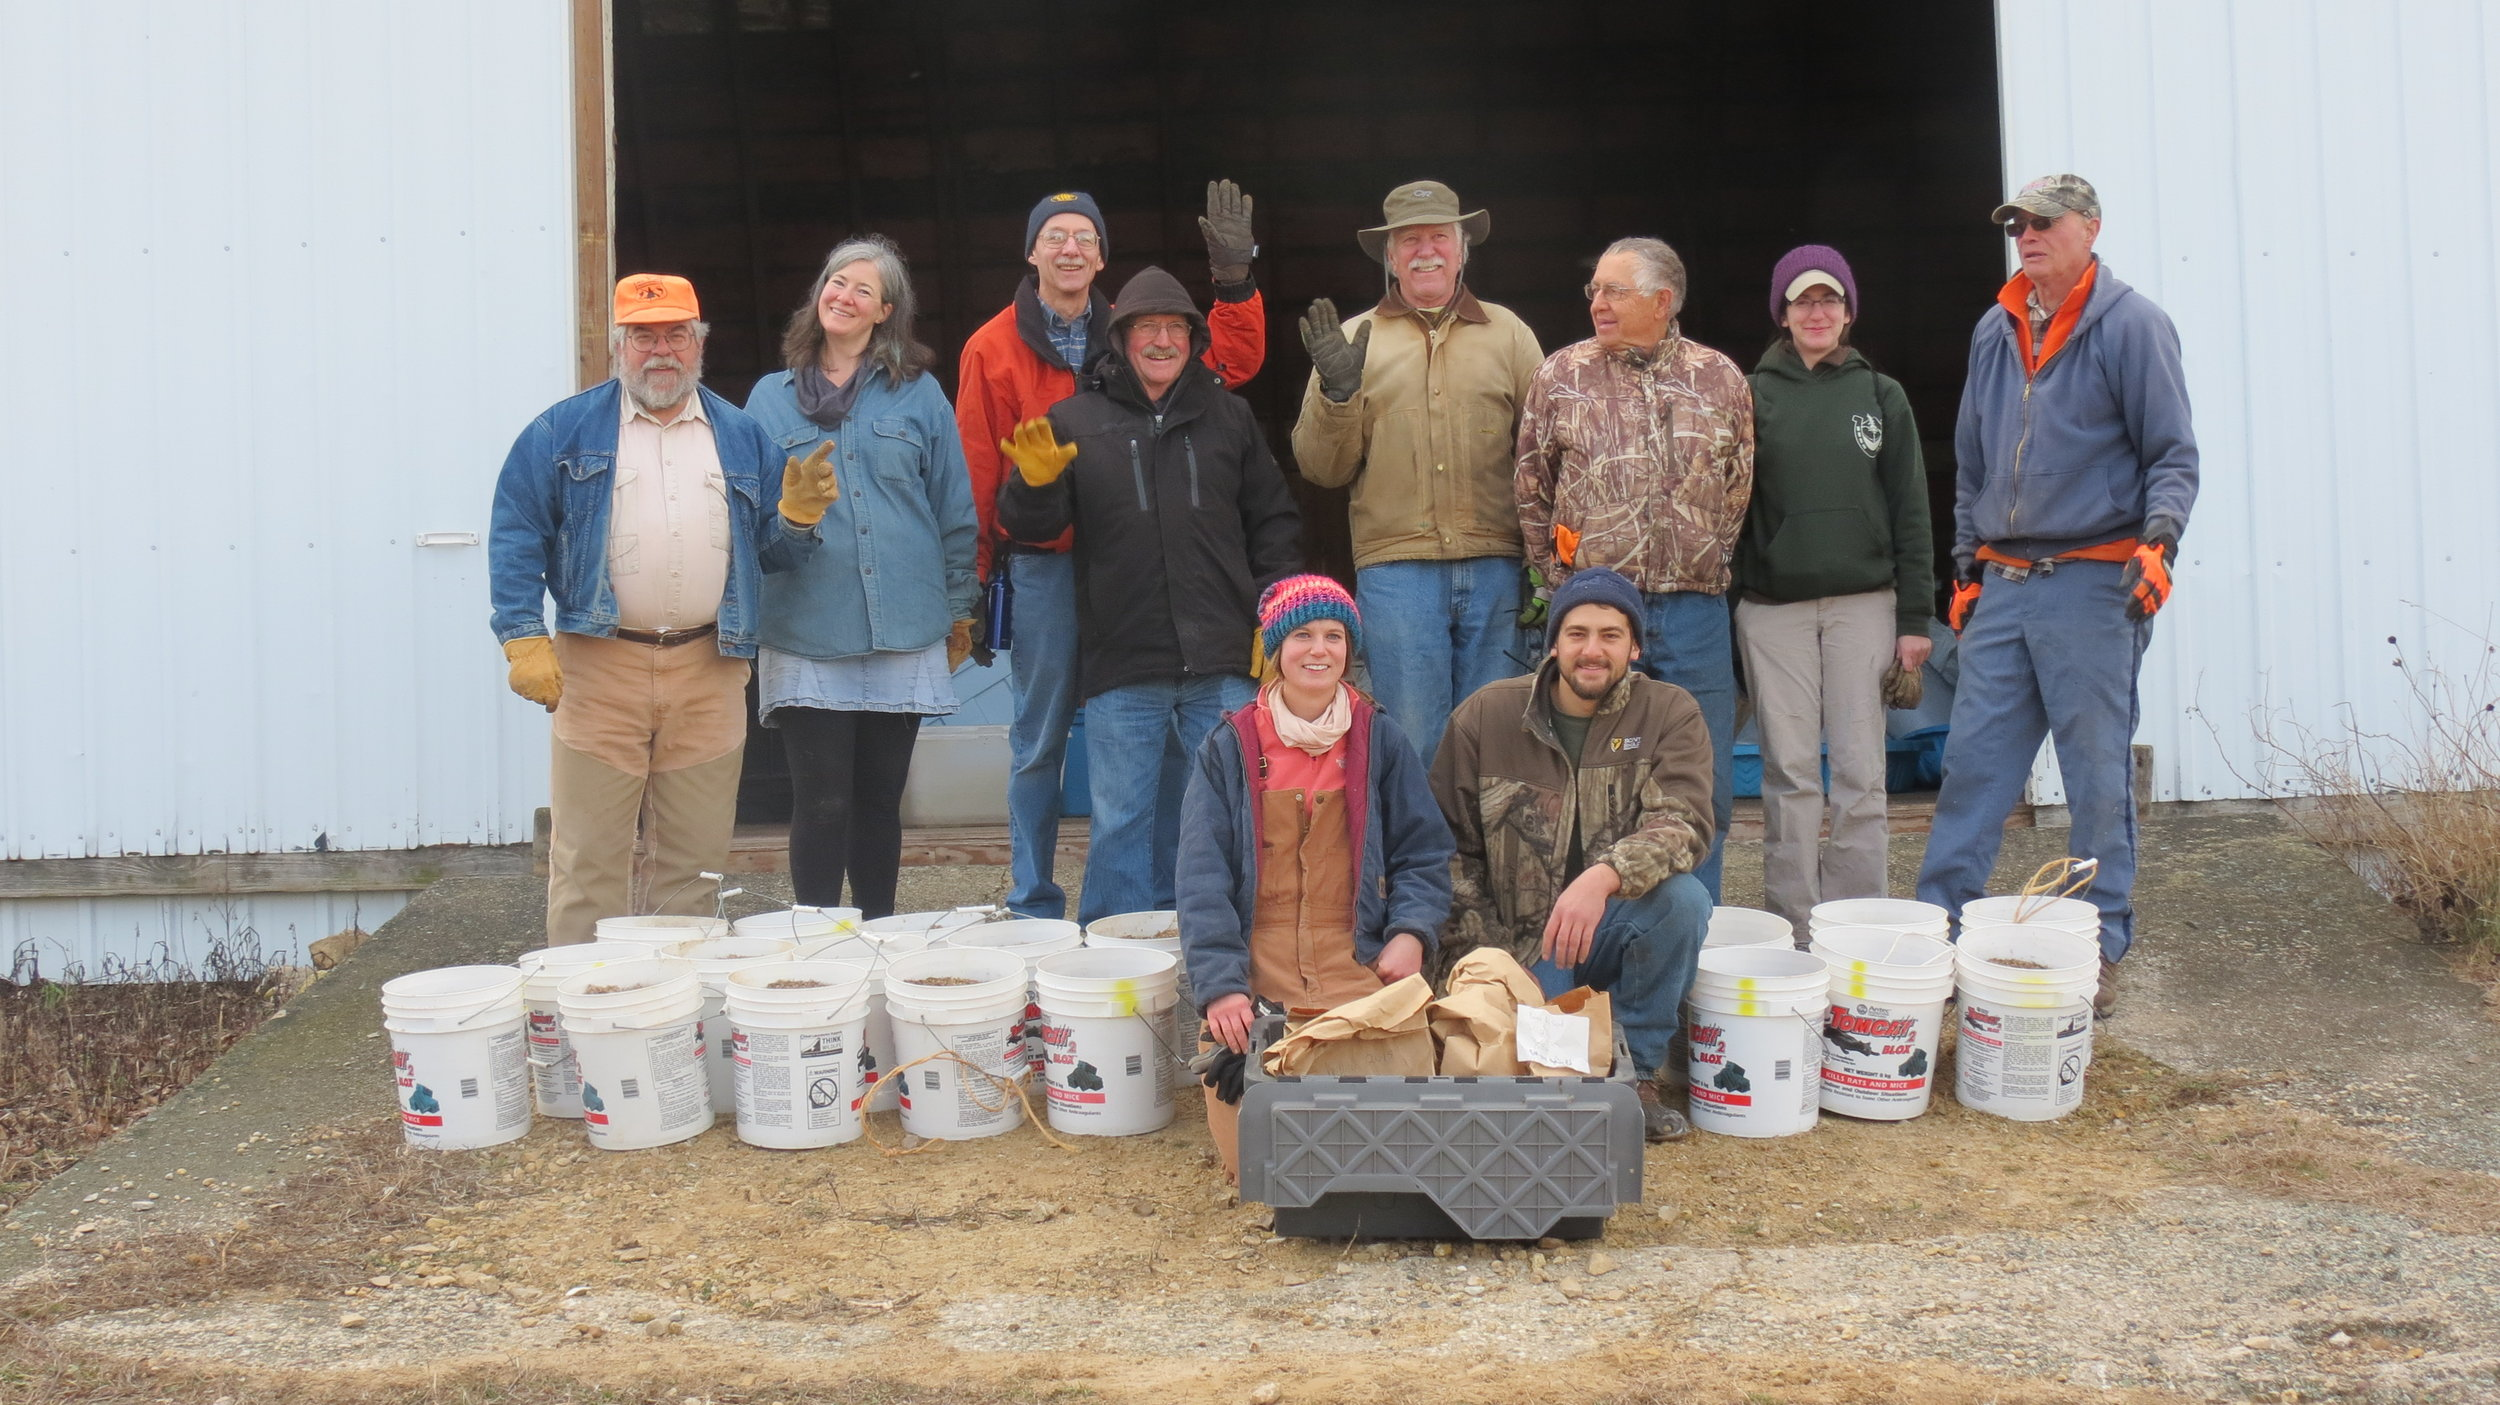 Madison Audubon volunteers help with prairie planting at Goose Pond Sanctuary. The buckets shown here are filled with native seed collected from Goose Pond earlier in the fall by volunteers, and are spread by volunteers as well!  MAS Photo